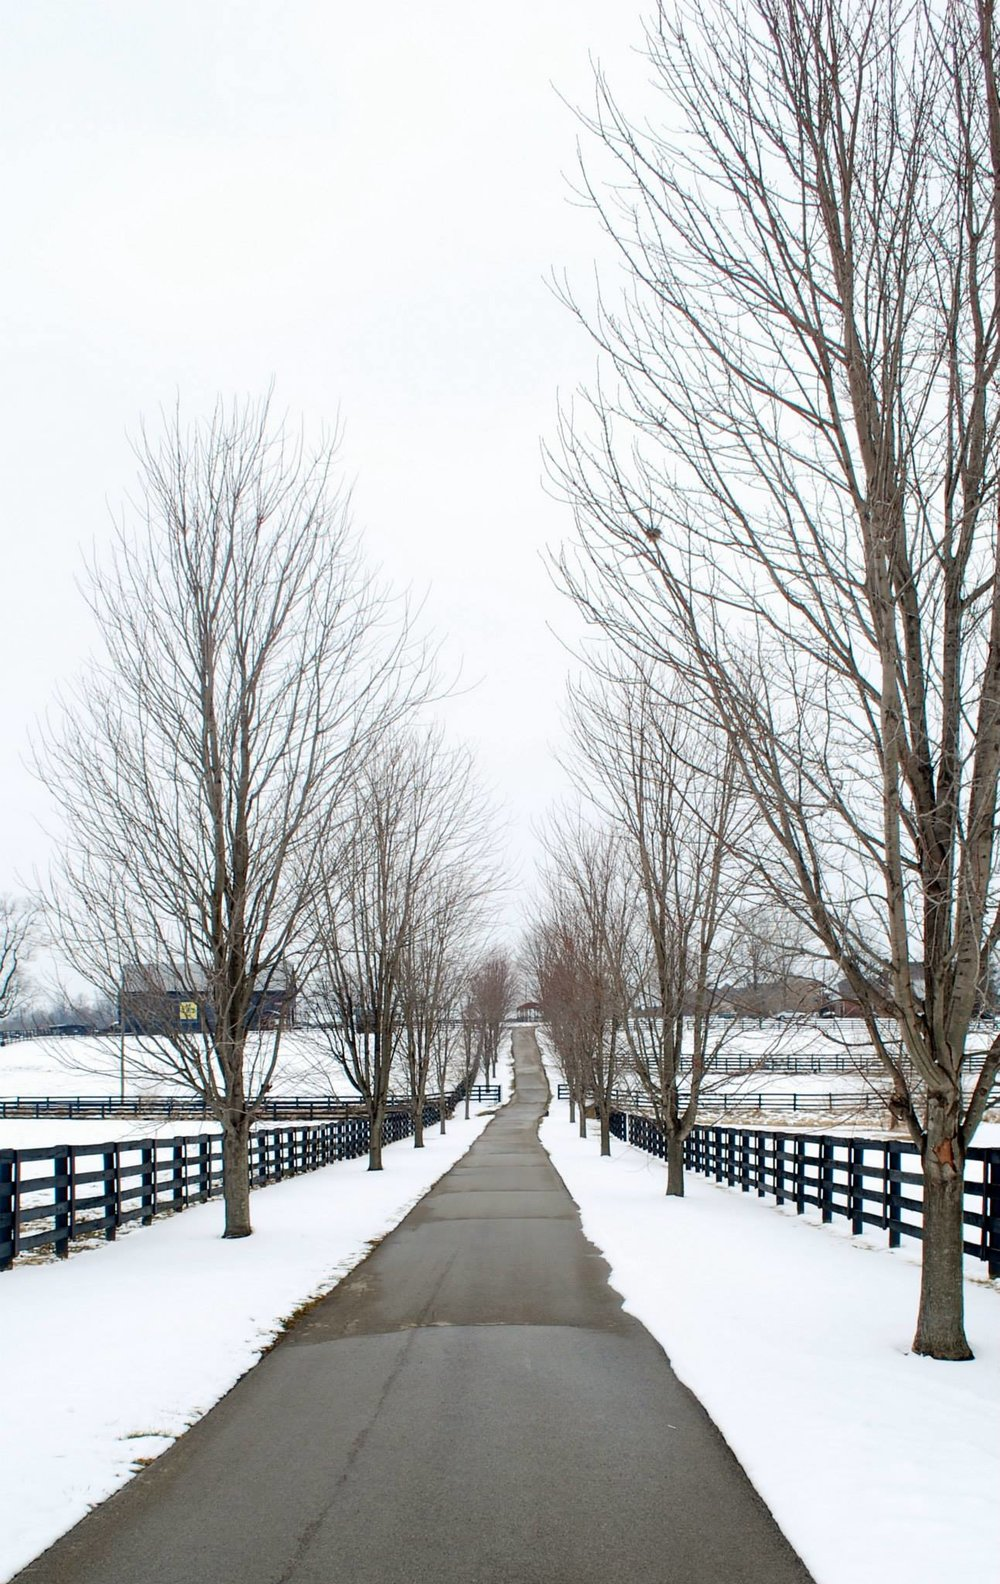 Main path through Old Friends Farm in the winter